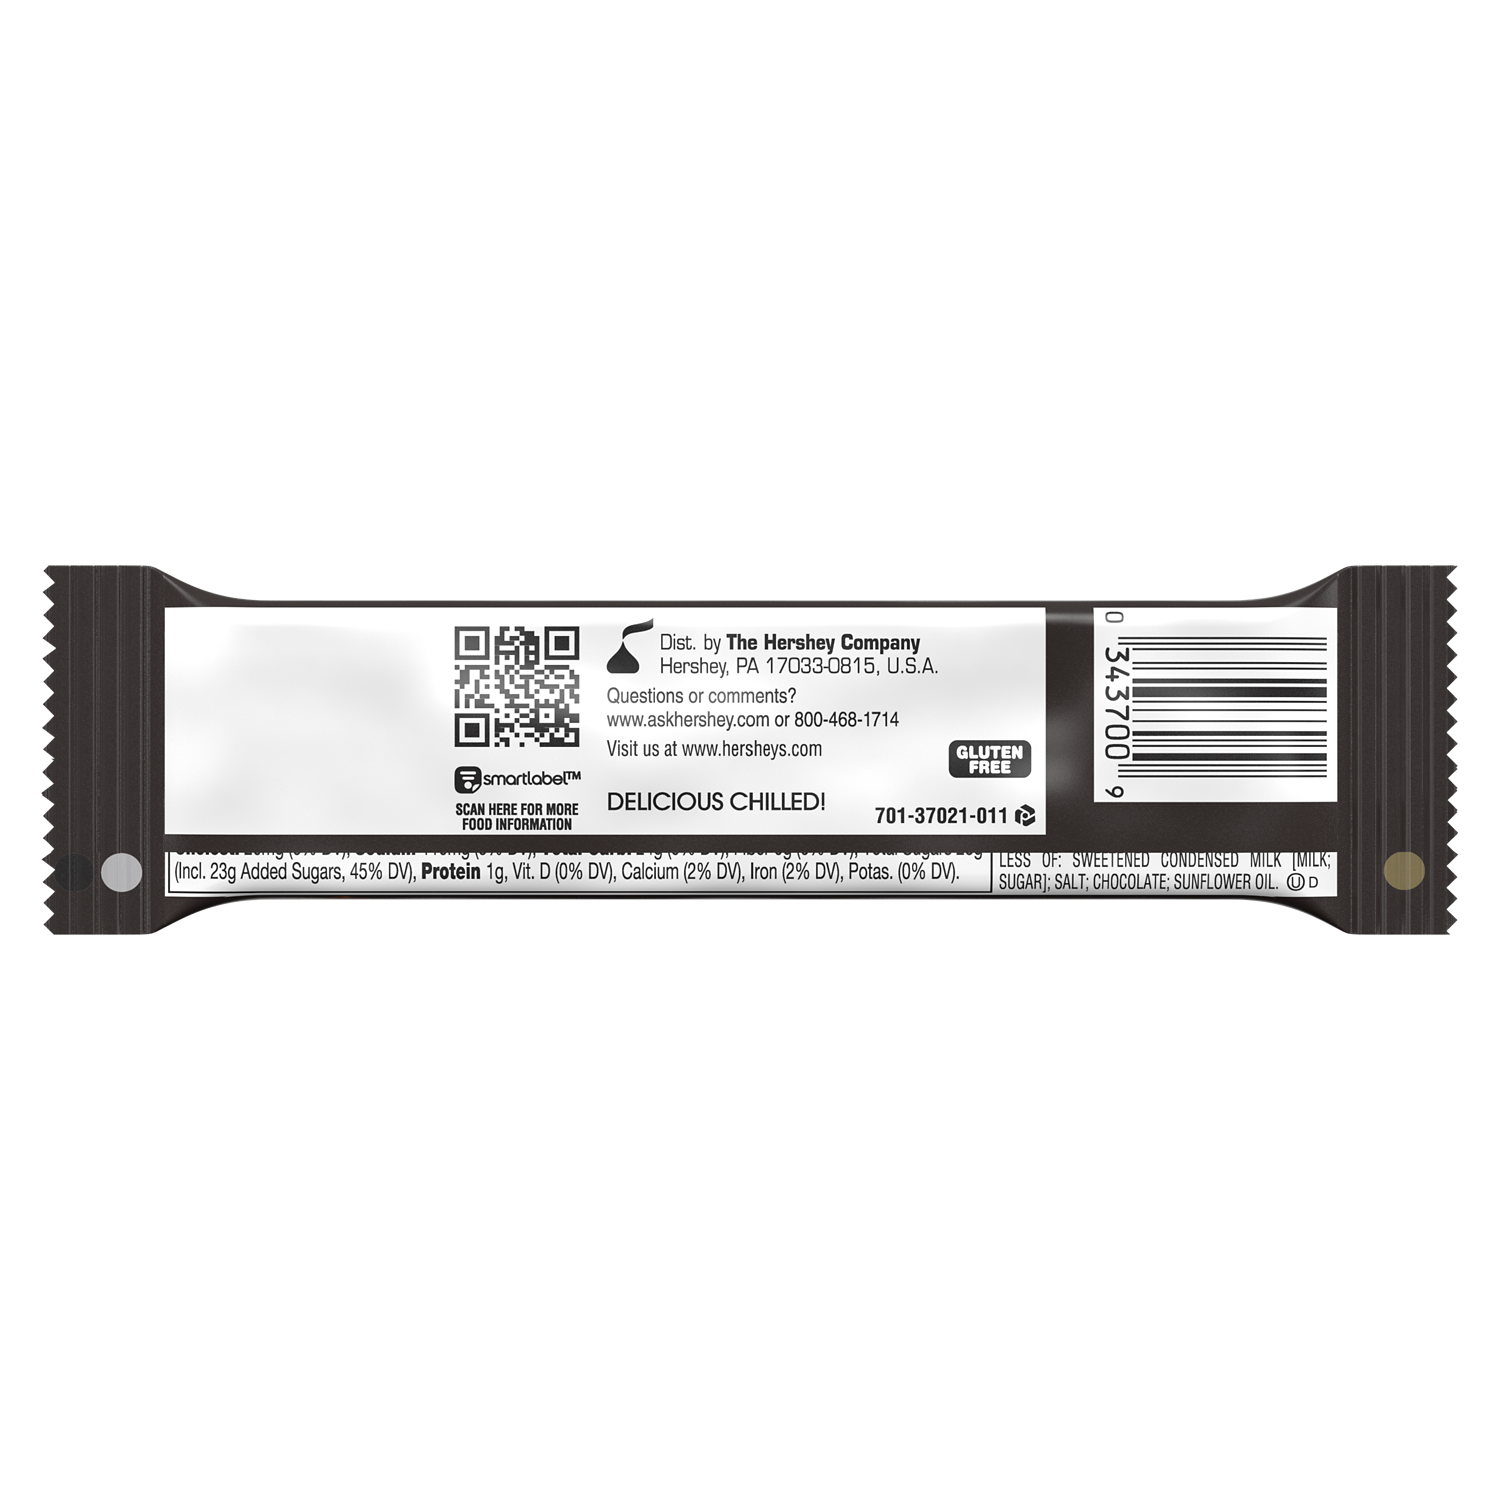 SKOR Milk Chocolate with Crisp Butter Toffee Candy Bar, 1.4 oz - Back of Package